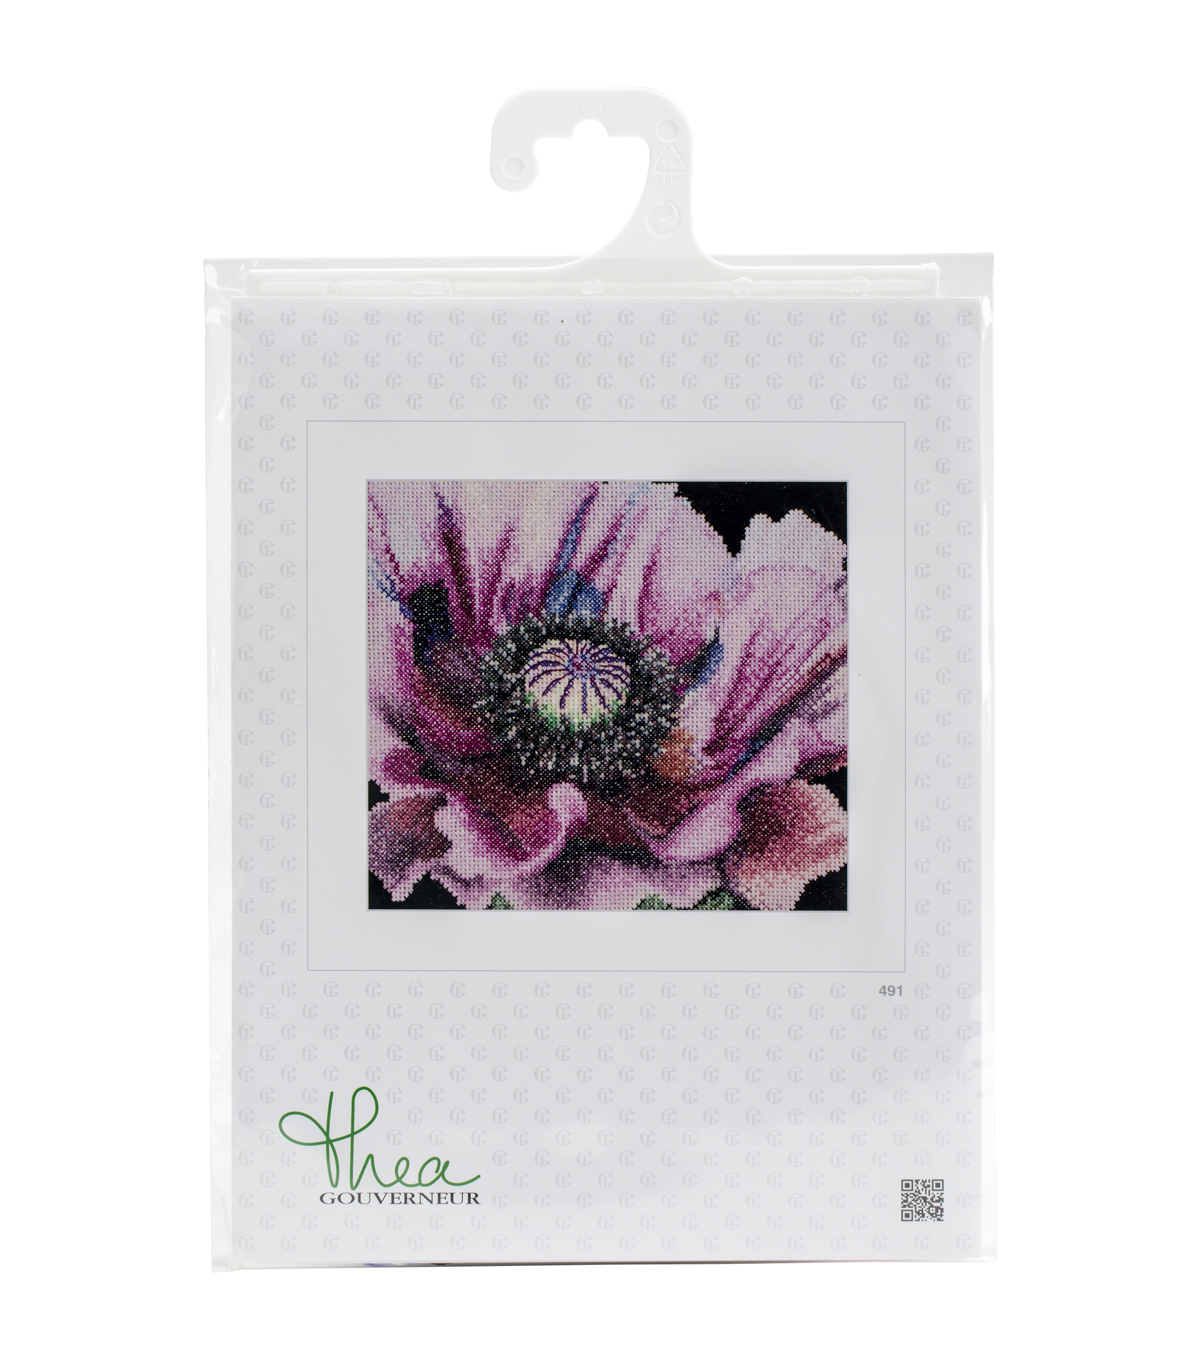 Thea Gouverneur Poppy On Aida Counted Cross Stitch Kit